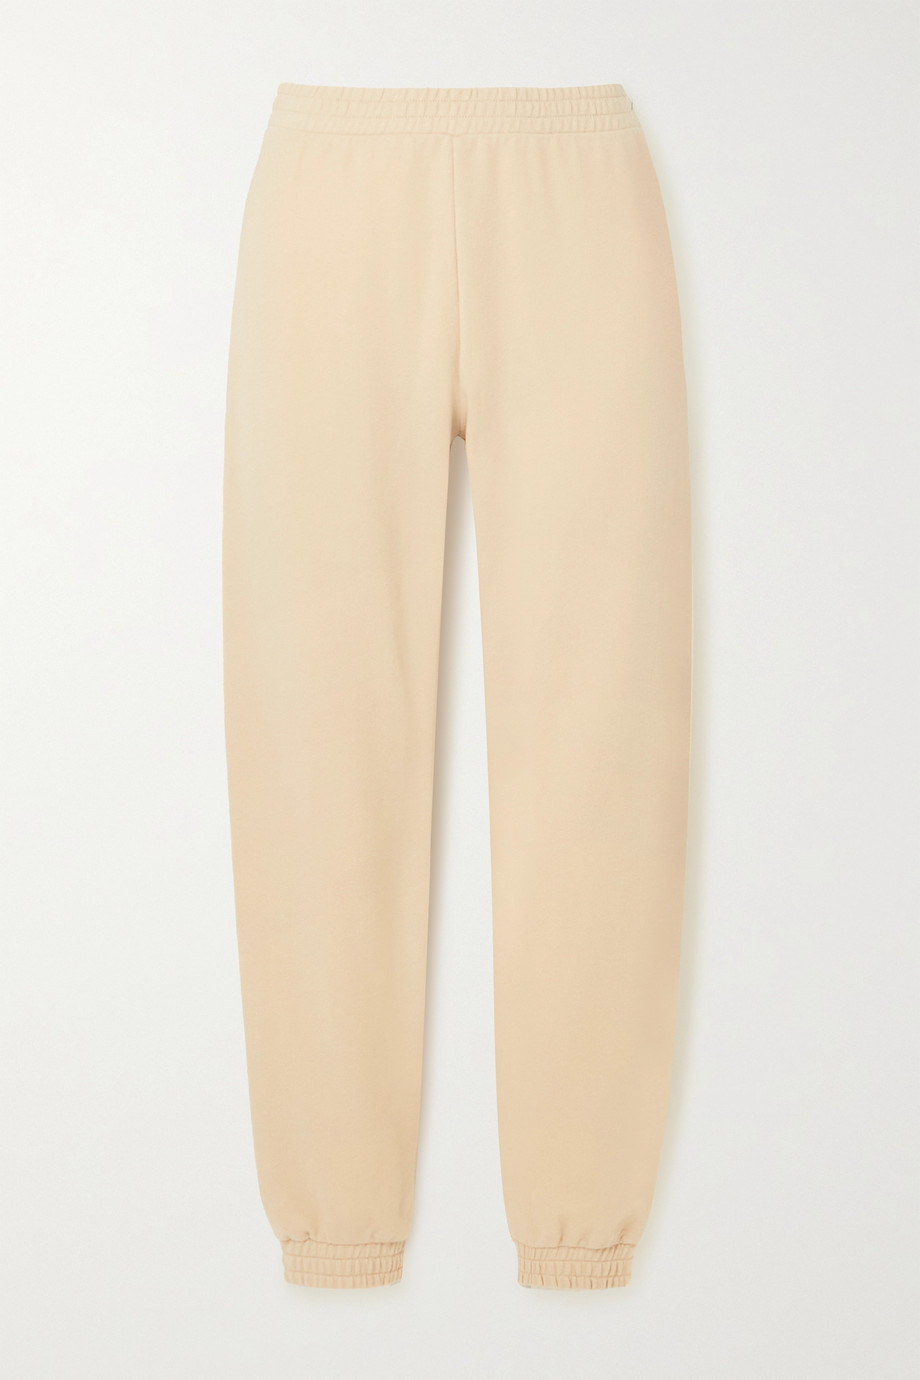 SKIN + NET SUSTAIN Emilie stretch organic cotton-jersey track pants